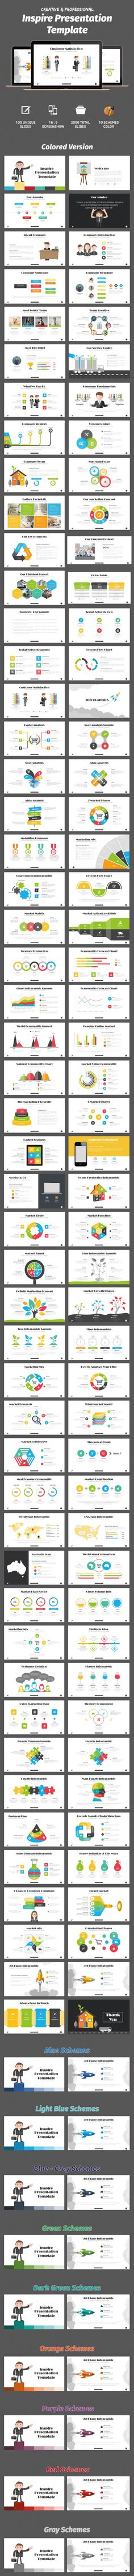 #Inspire Powerpoint Template - #Business #PowerPoint Templates Download here: https://graphicriver.net/item/inspire-powerpoint-template/11740606?ref=alena994